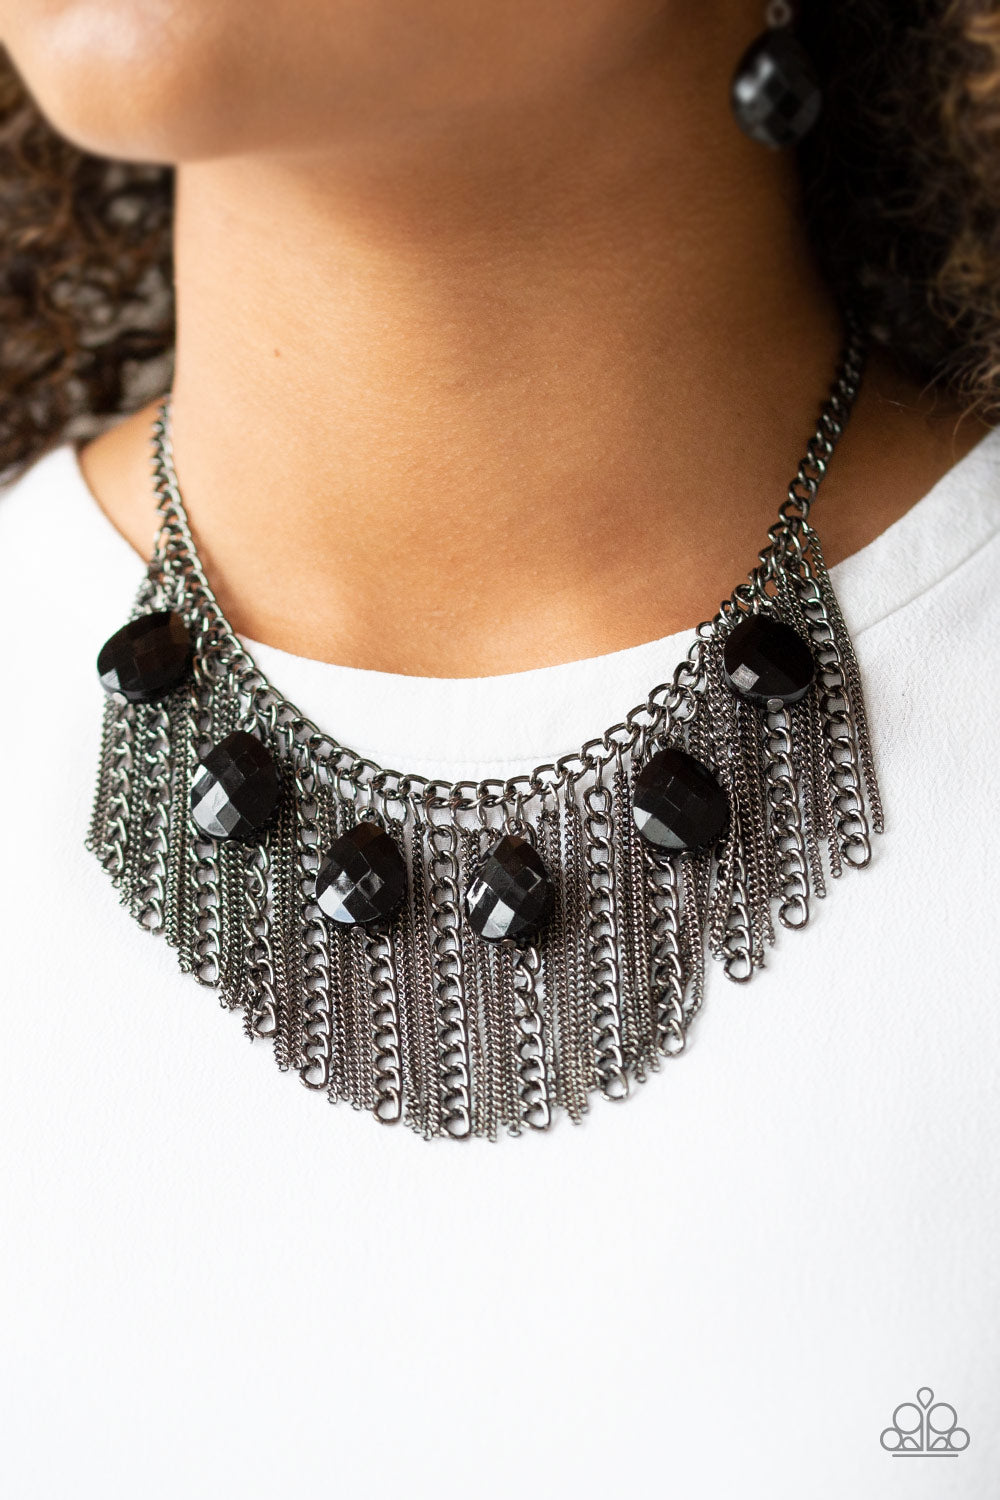 Paparazzi Jewelry & Accessories - Vixen Conviction - Black Necklace. Bling By Titia Boutique